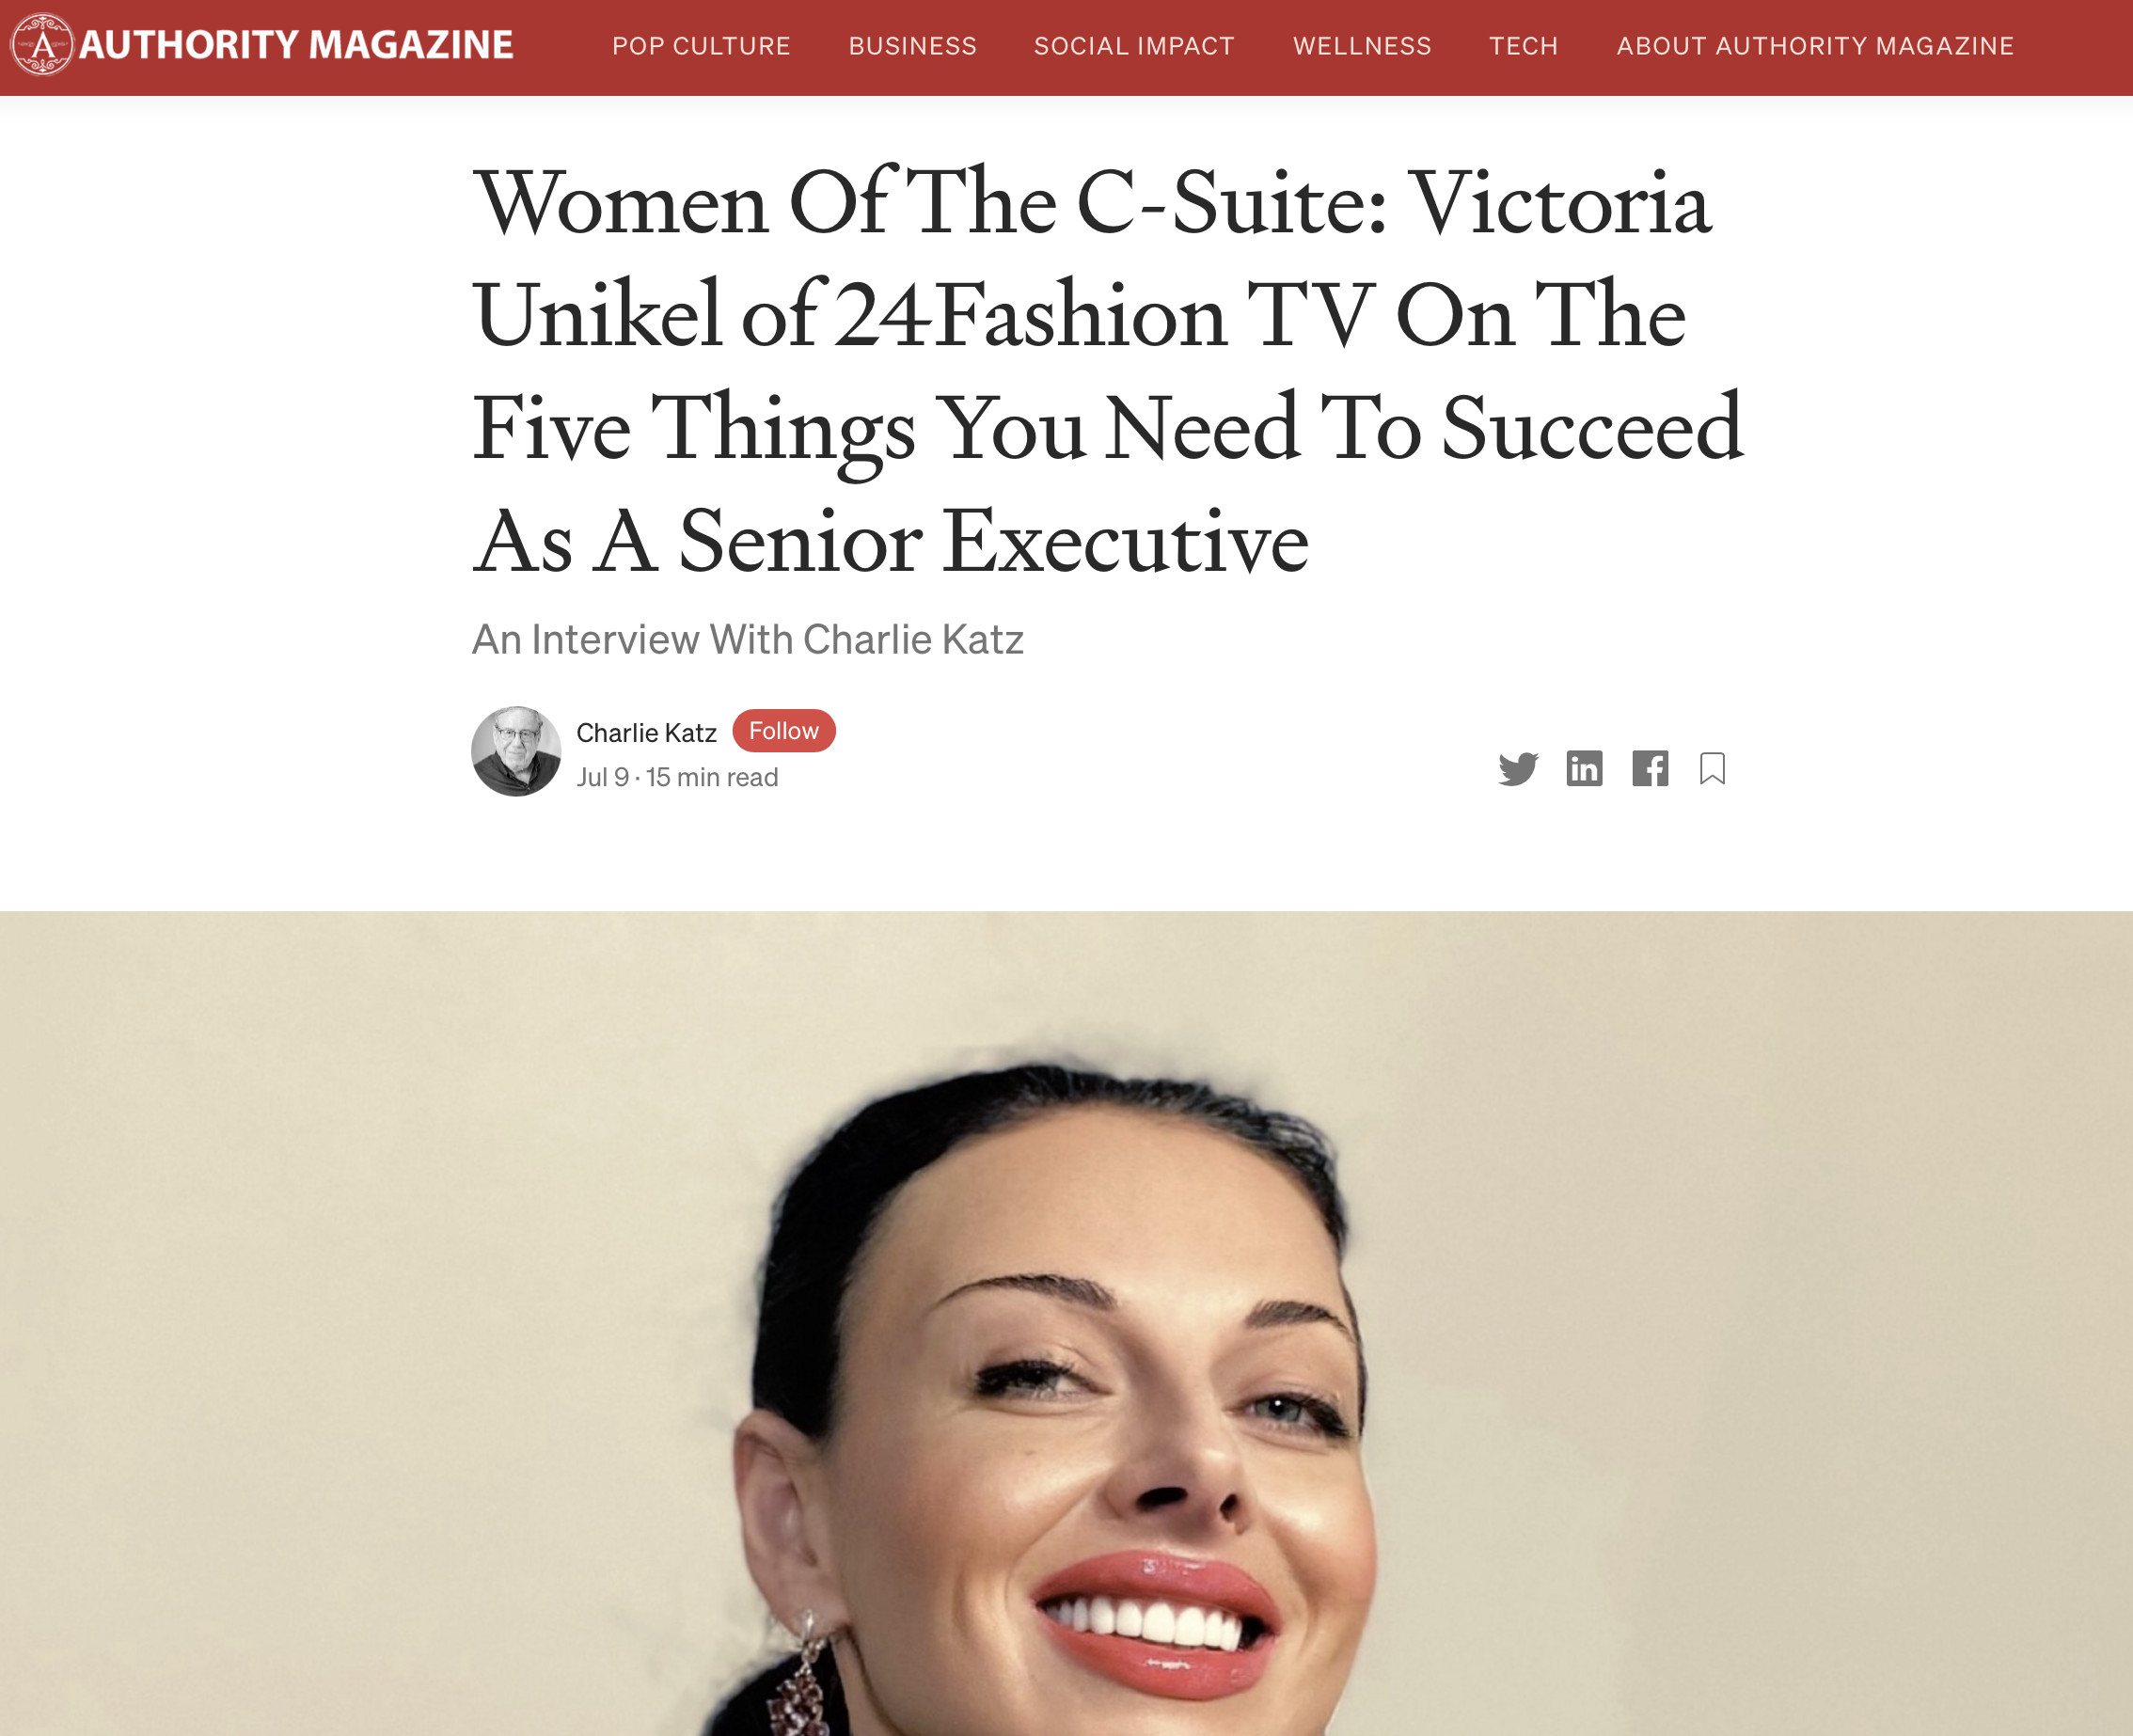 Victoria Unikel is a multitalented and award-winning international artist, CEO and co-founder of 24Fashion TV (24Fashion.TV), and President and co-founder of VUGA Enterprises.